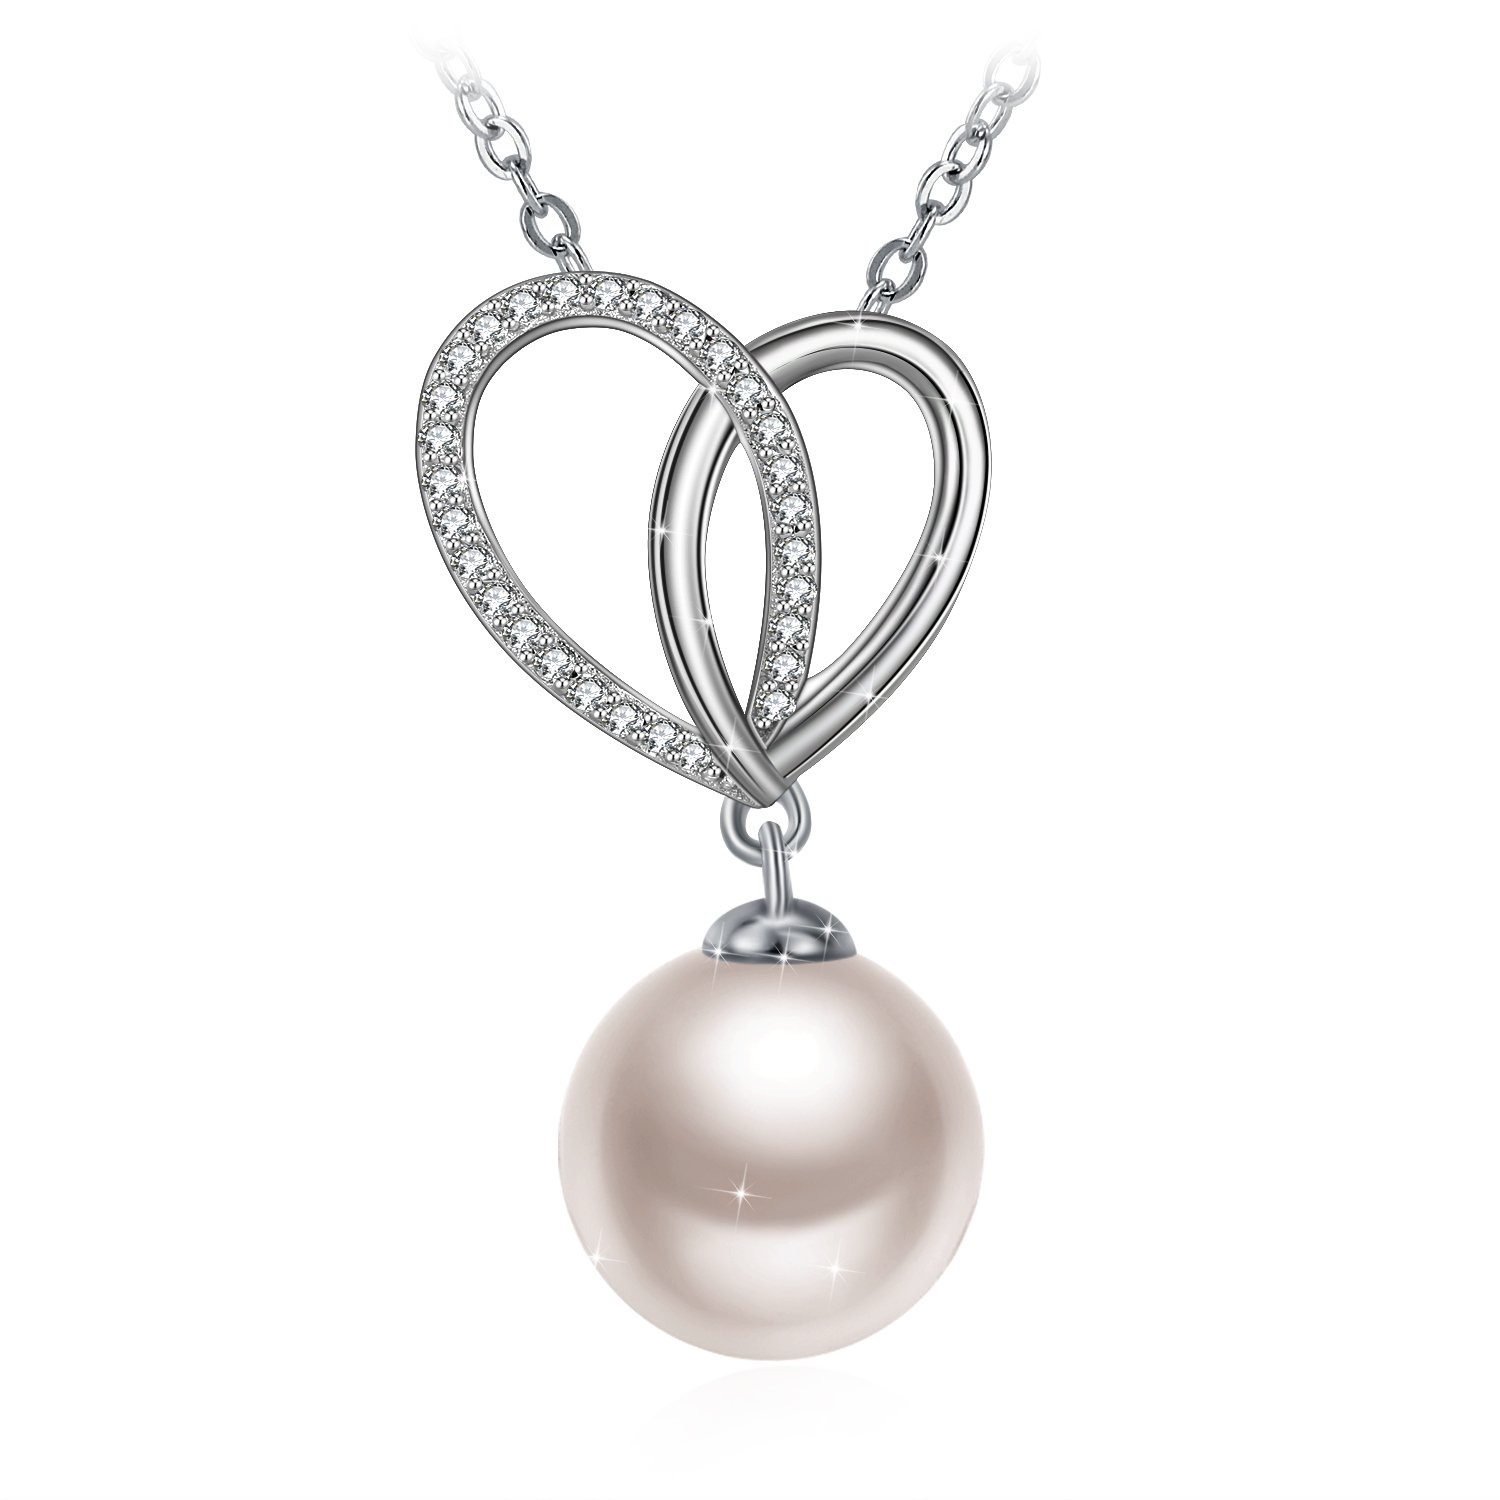 J.Rosée Womens Fashion 925 Sterling Silver Single Round White Simulated Shell Pearl Pendant Necklace JRUS-1468